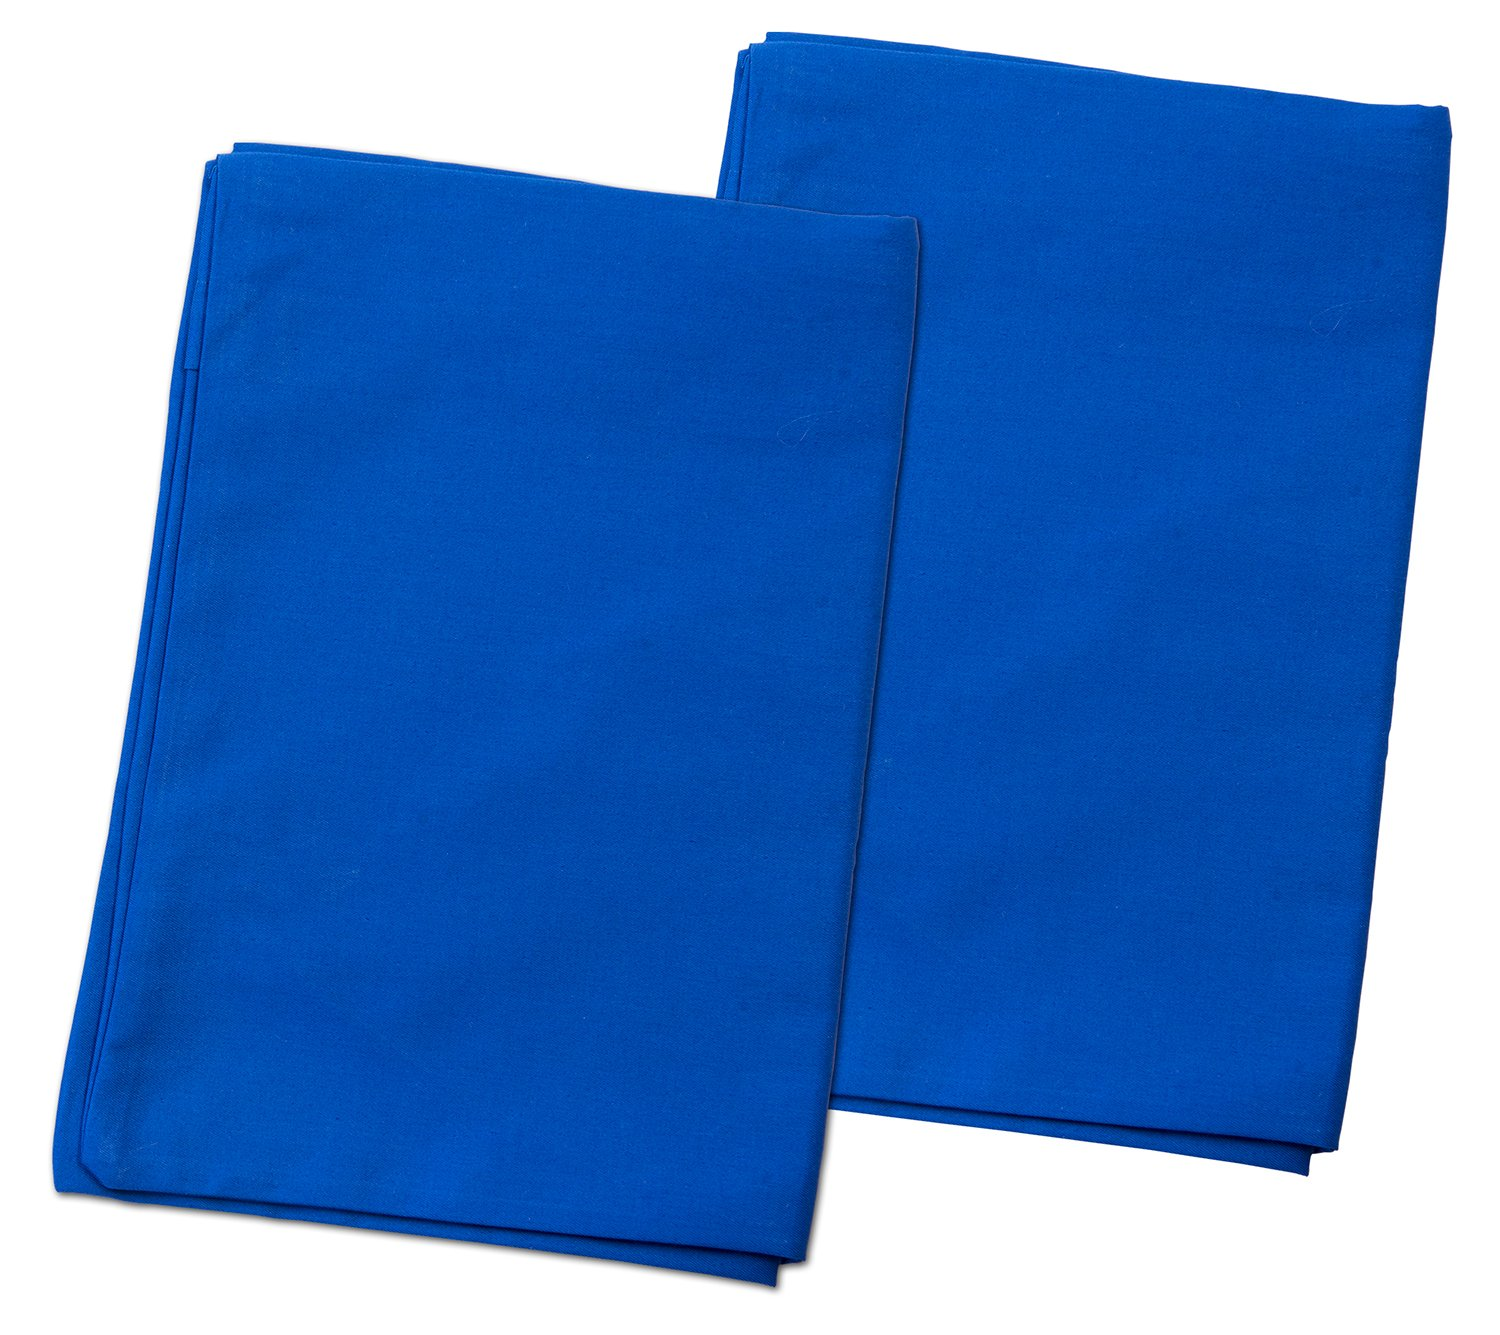 2 Dark Blue Toddler Pillowcases - Envelope Style - For Pillows Sized 13x18 and 14x19 - 100% Cotton With Sateen Weave - Machine Washable - 2 Pack